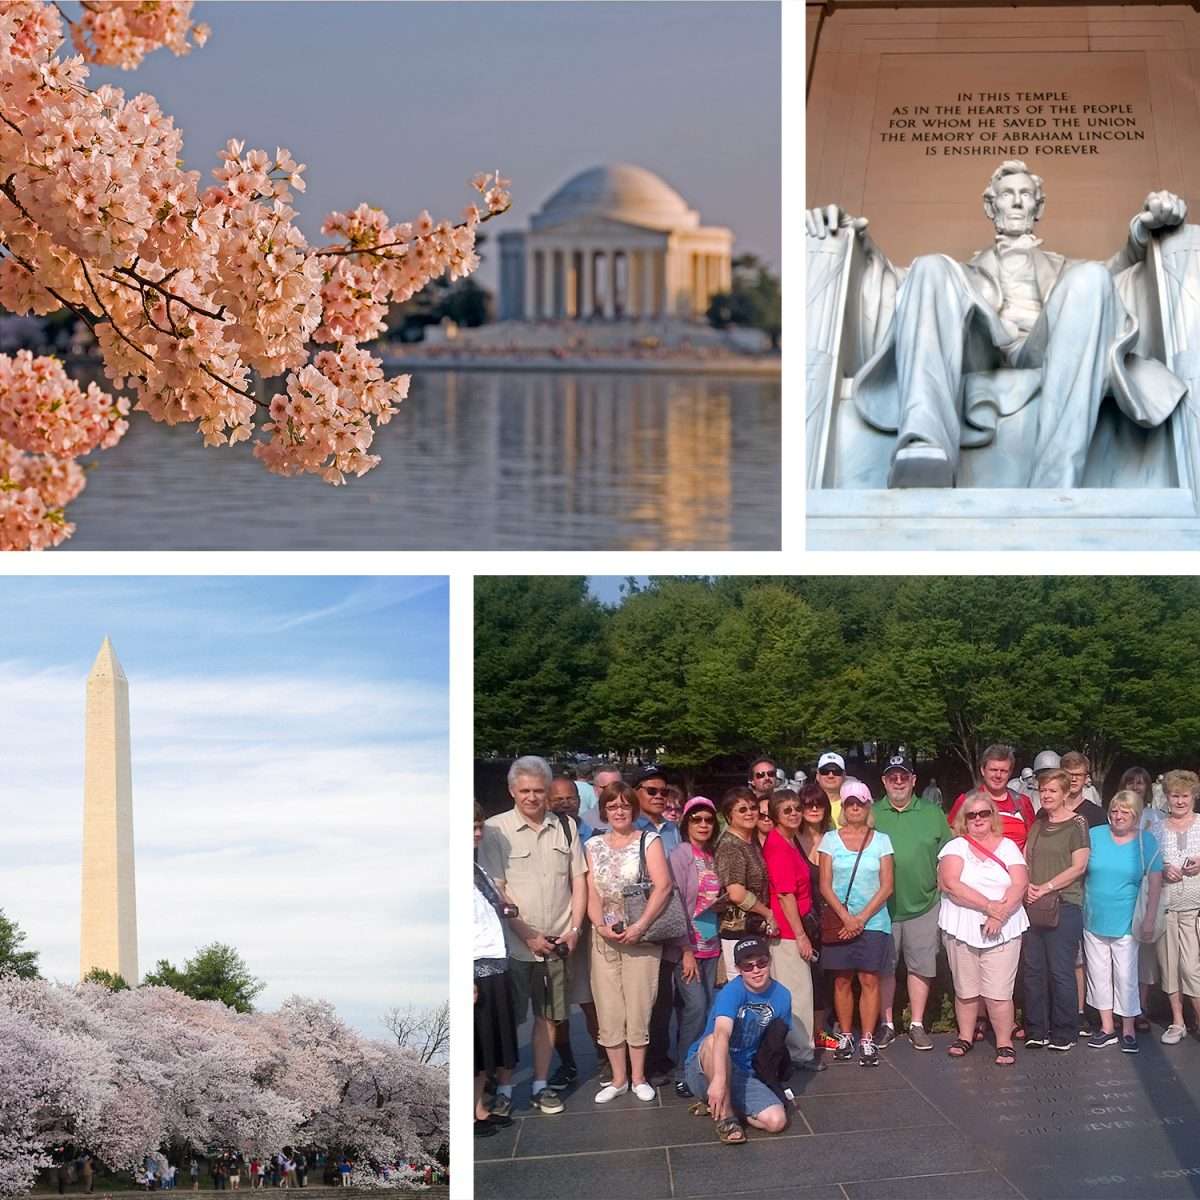 Washington cherry blossom photo collage